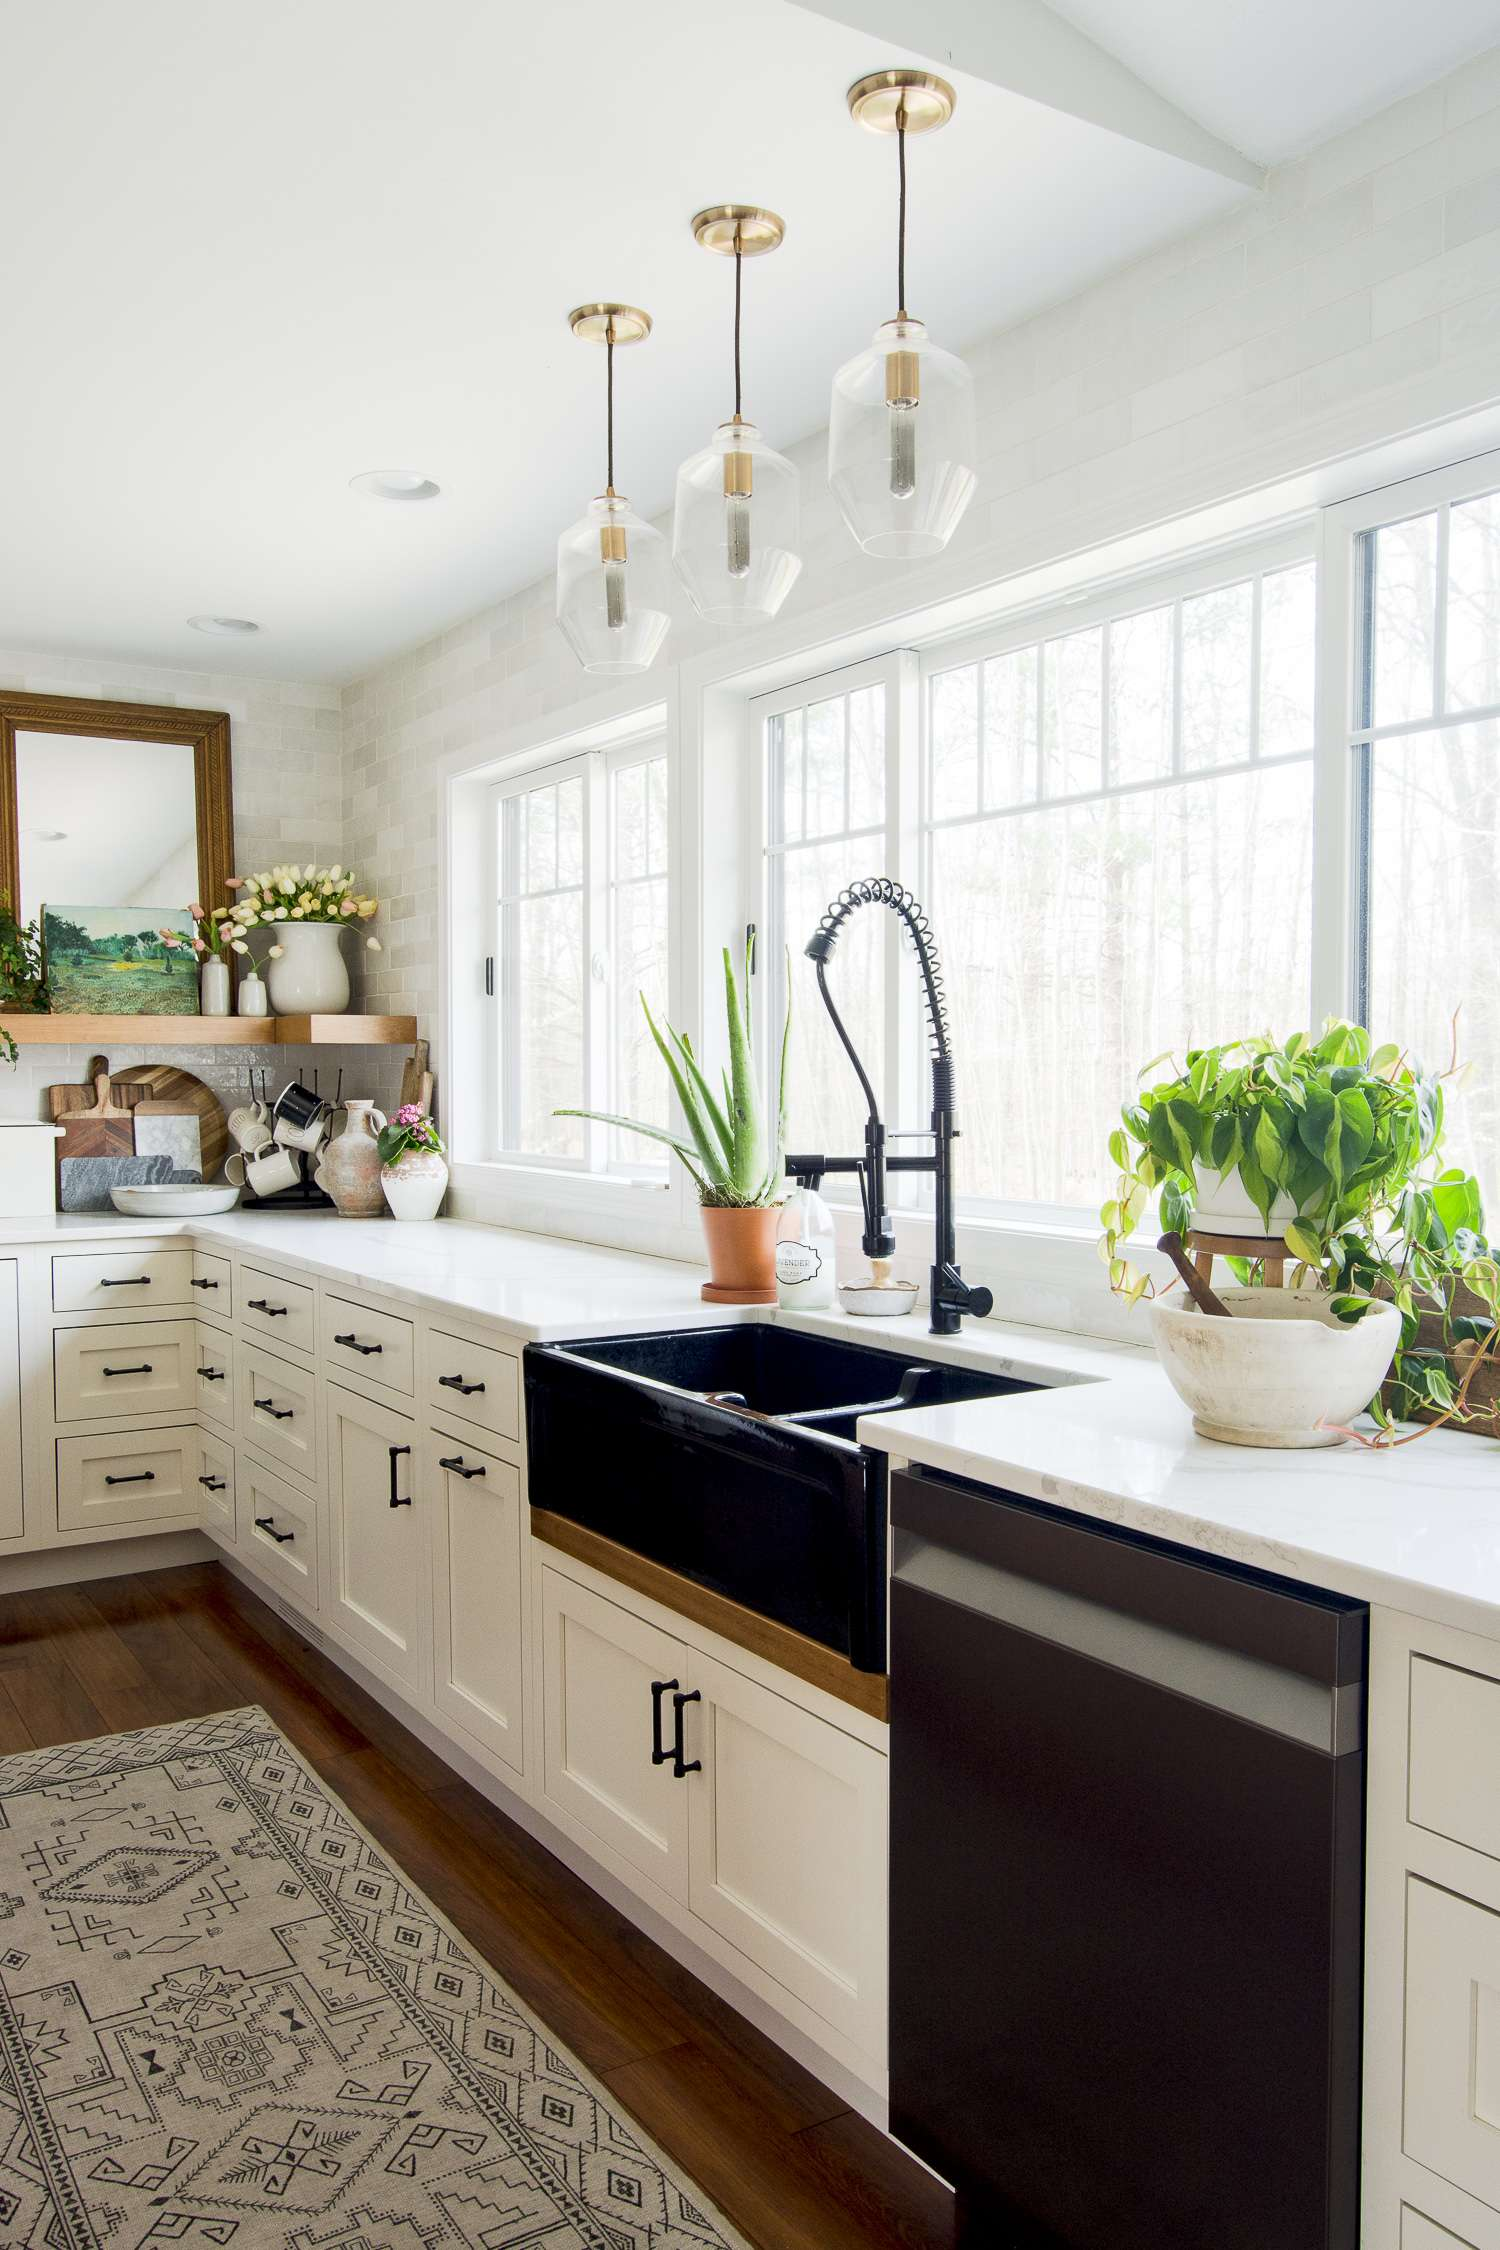 Modern farmhouse kitchen with houseplants.